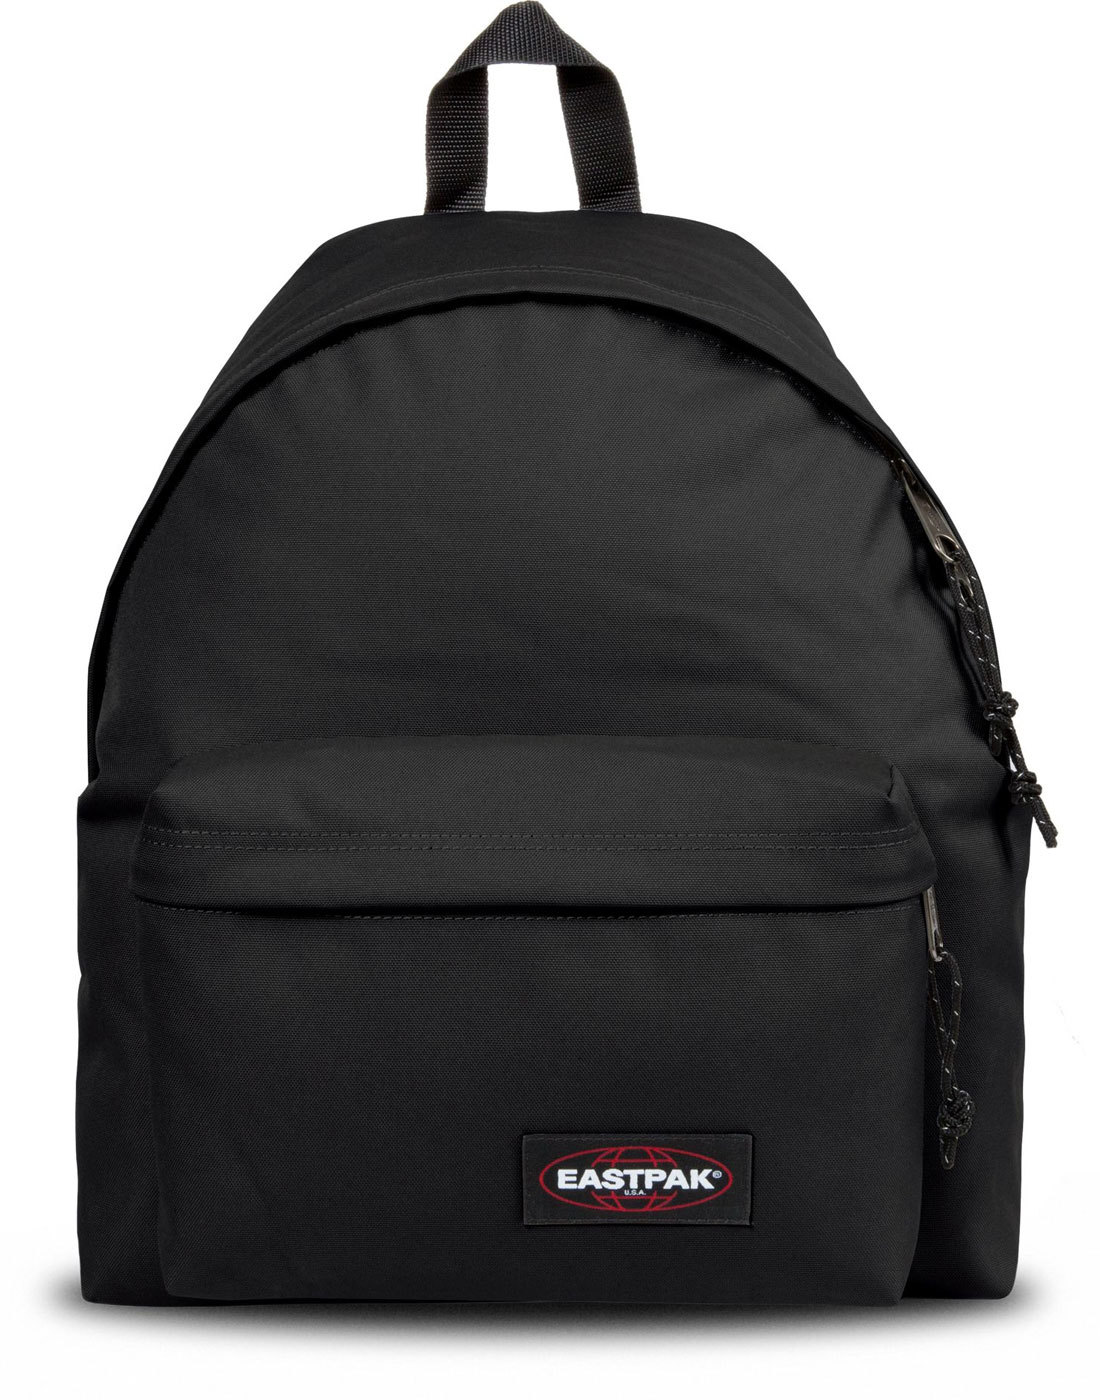 Padded Pak'r EASTPAK Retro Backpack - Black